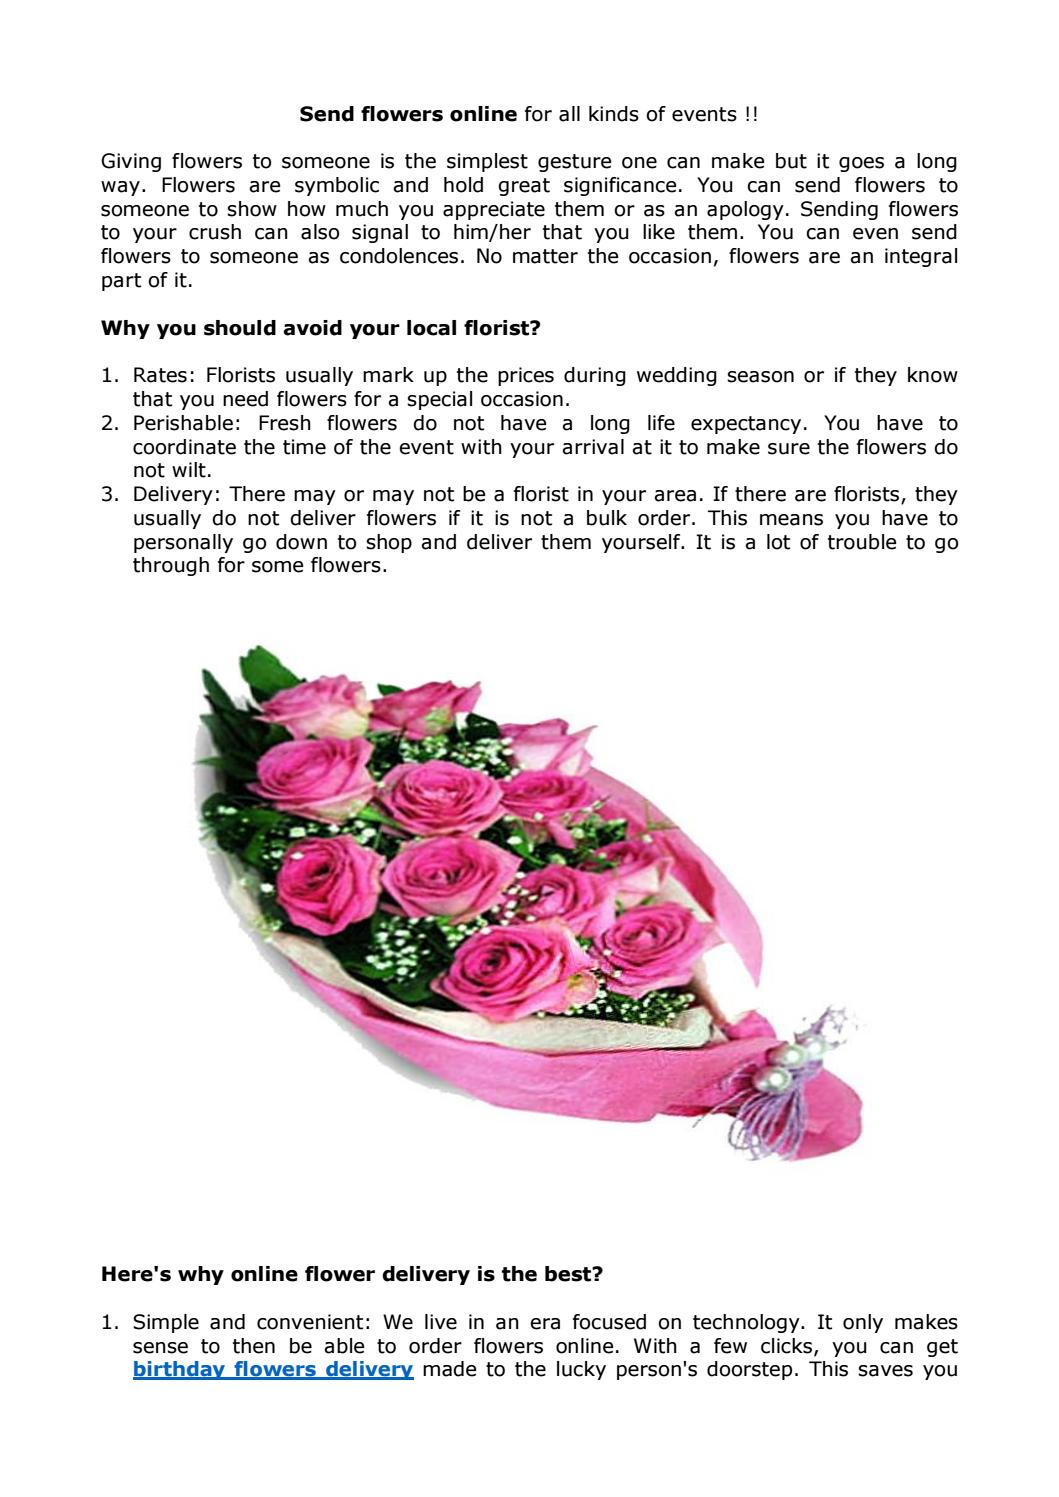 Send flowers online for all kinds of events by phoolwala issuu izmirmasajfo